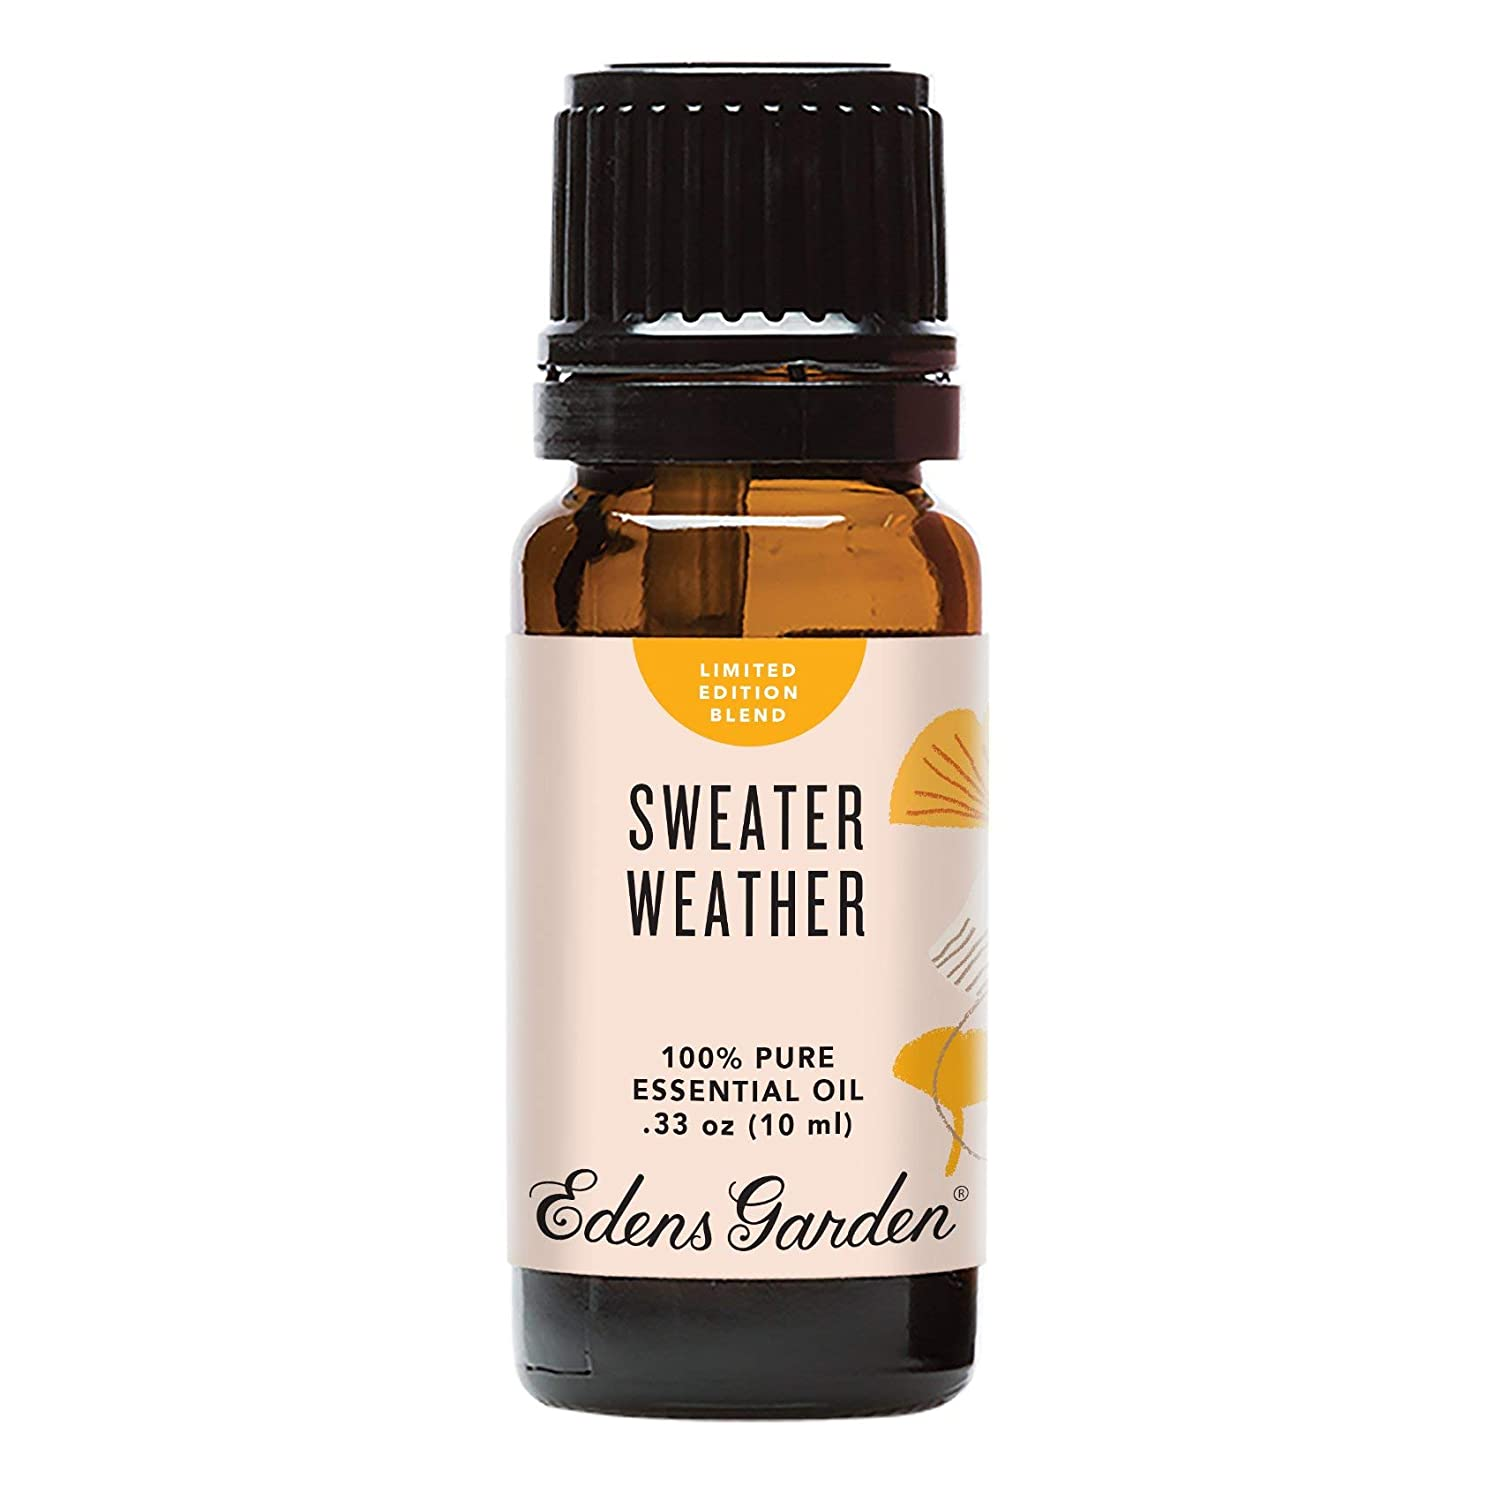 Edens Garden Sweater Weather Holiday Blend, Essential Oil Synergy Blend, 100% Pure Therapeutic Grade, 10 ml